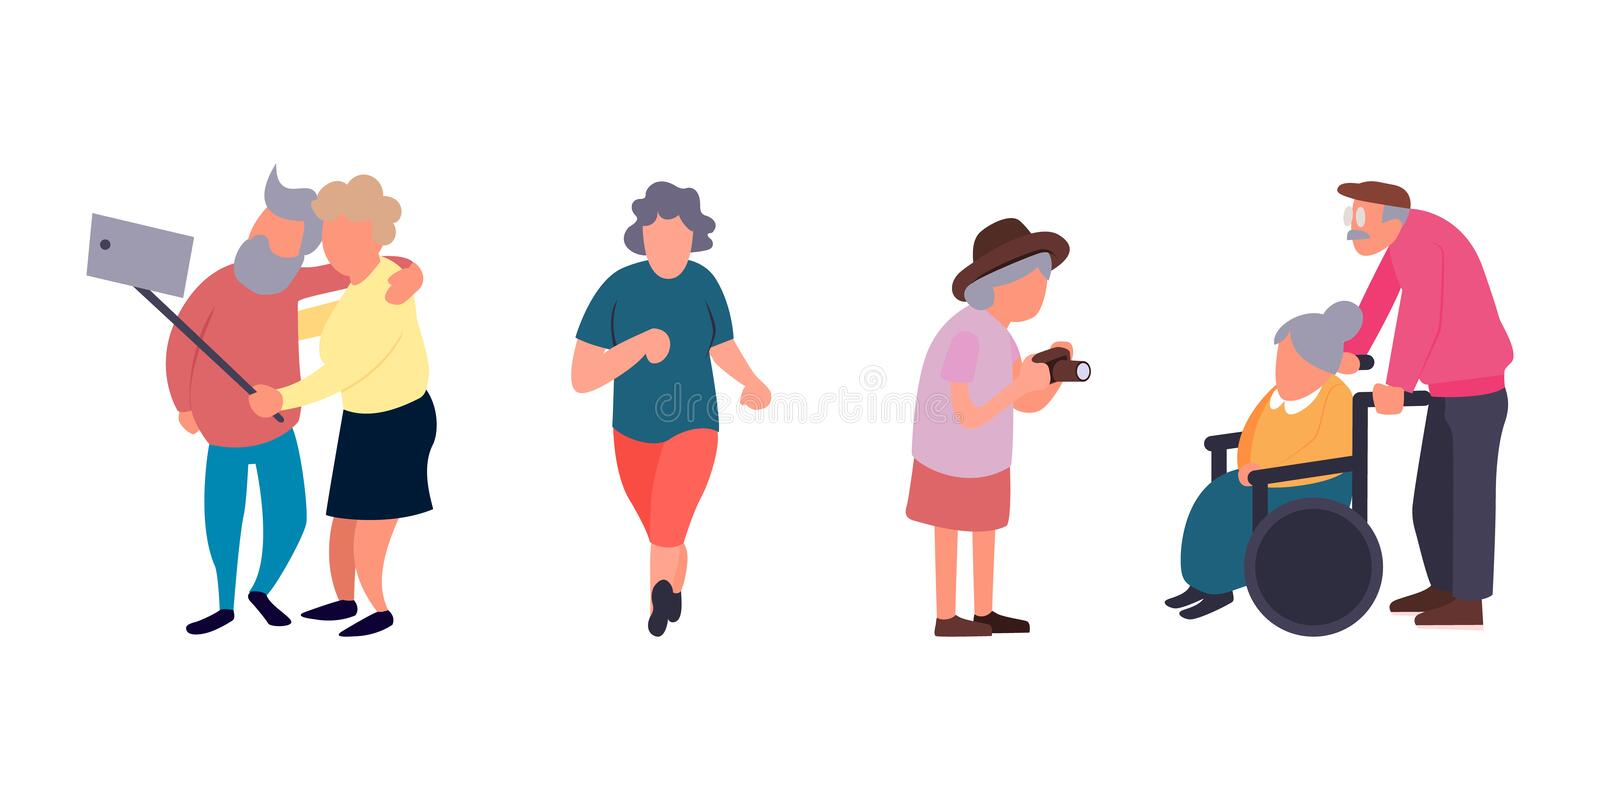 Recreation and leisure senior activities concept. Group of active old people. Elder people background. Cartoon elderly royalty free illustration